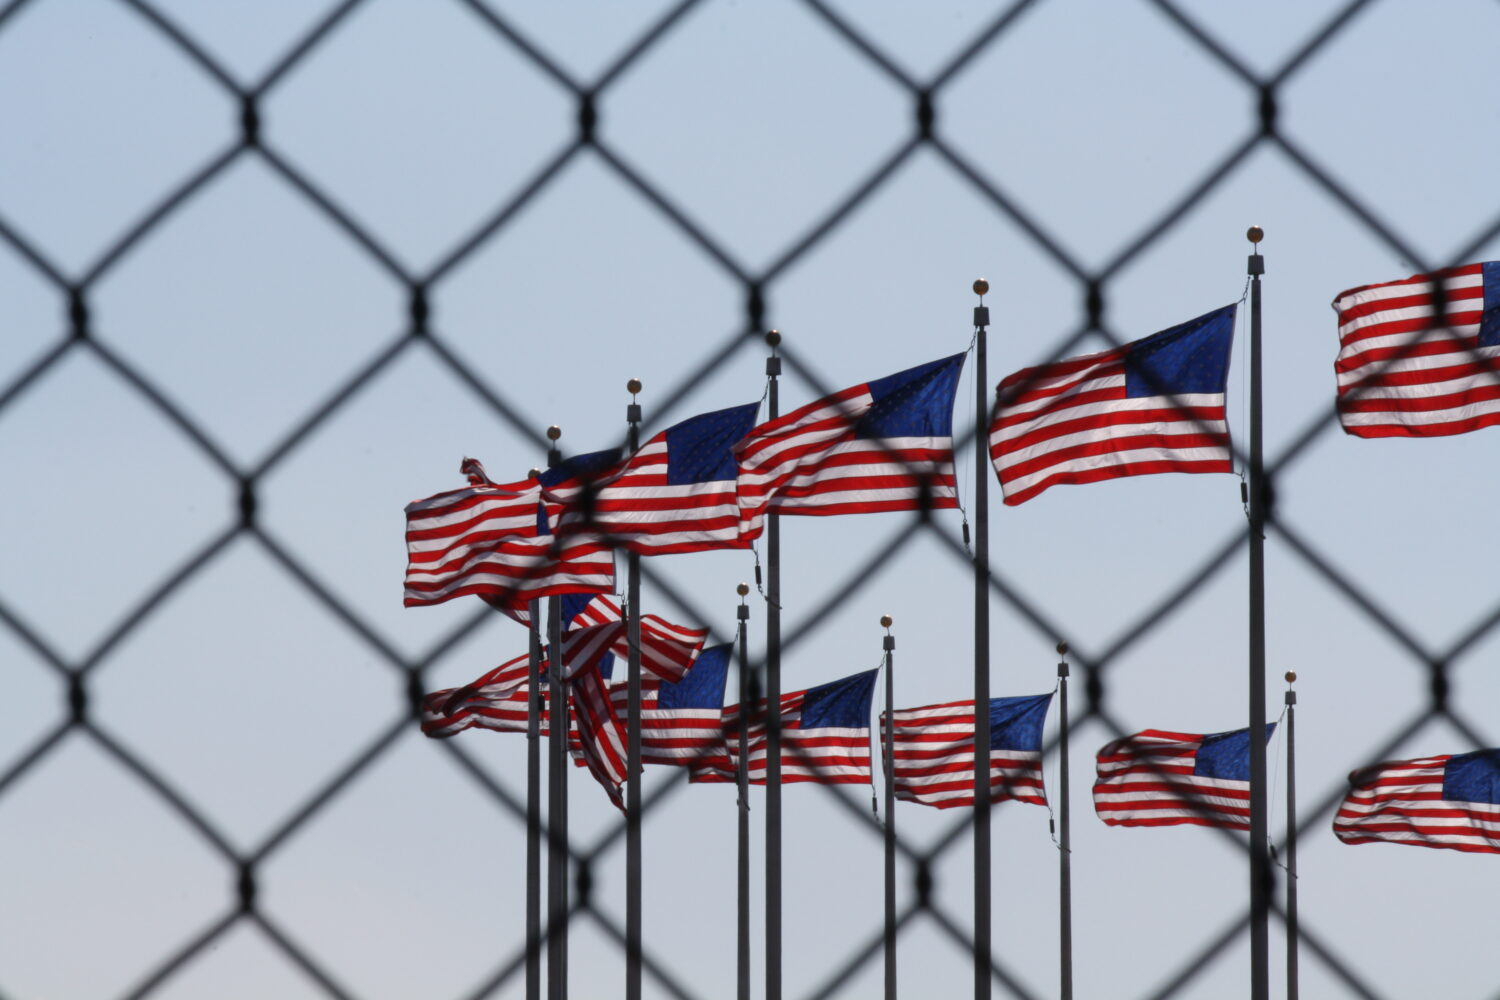 American flags behind a fence